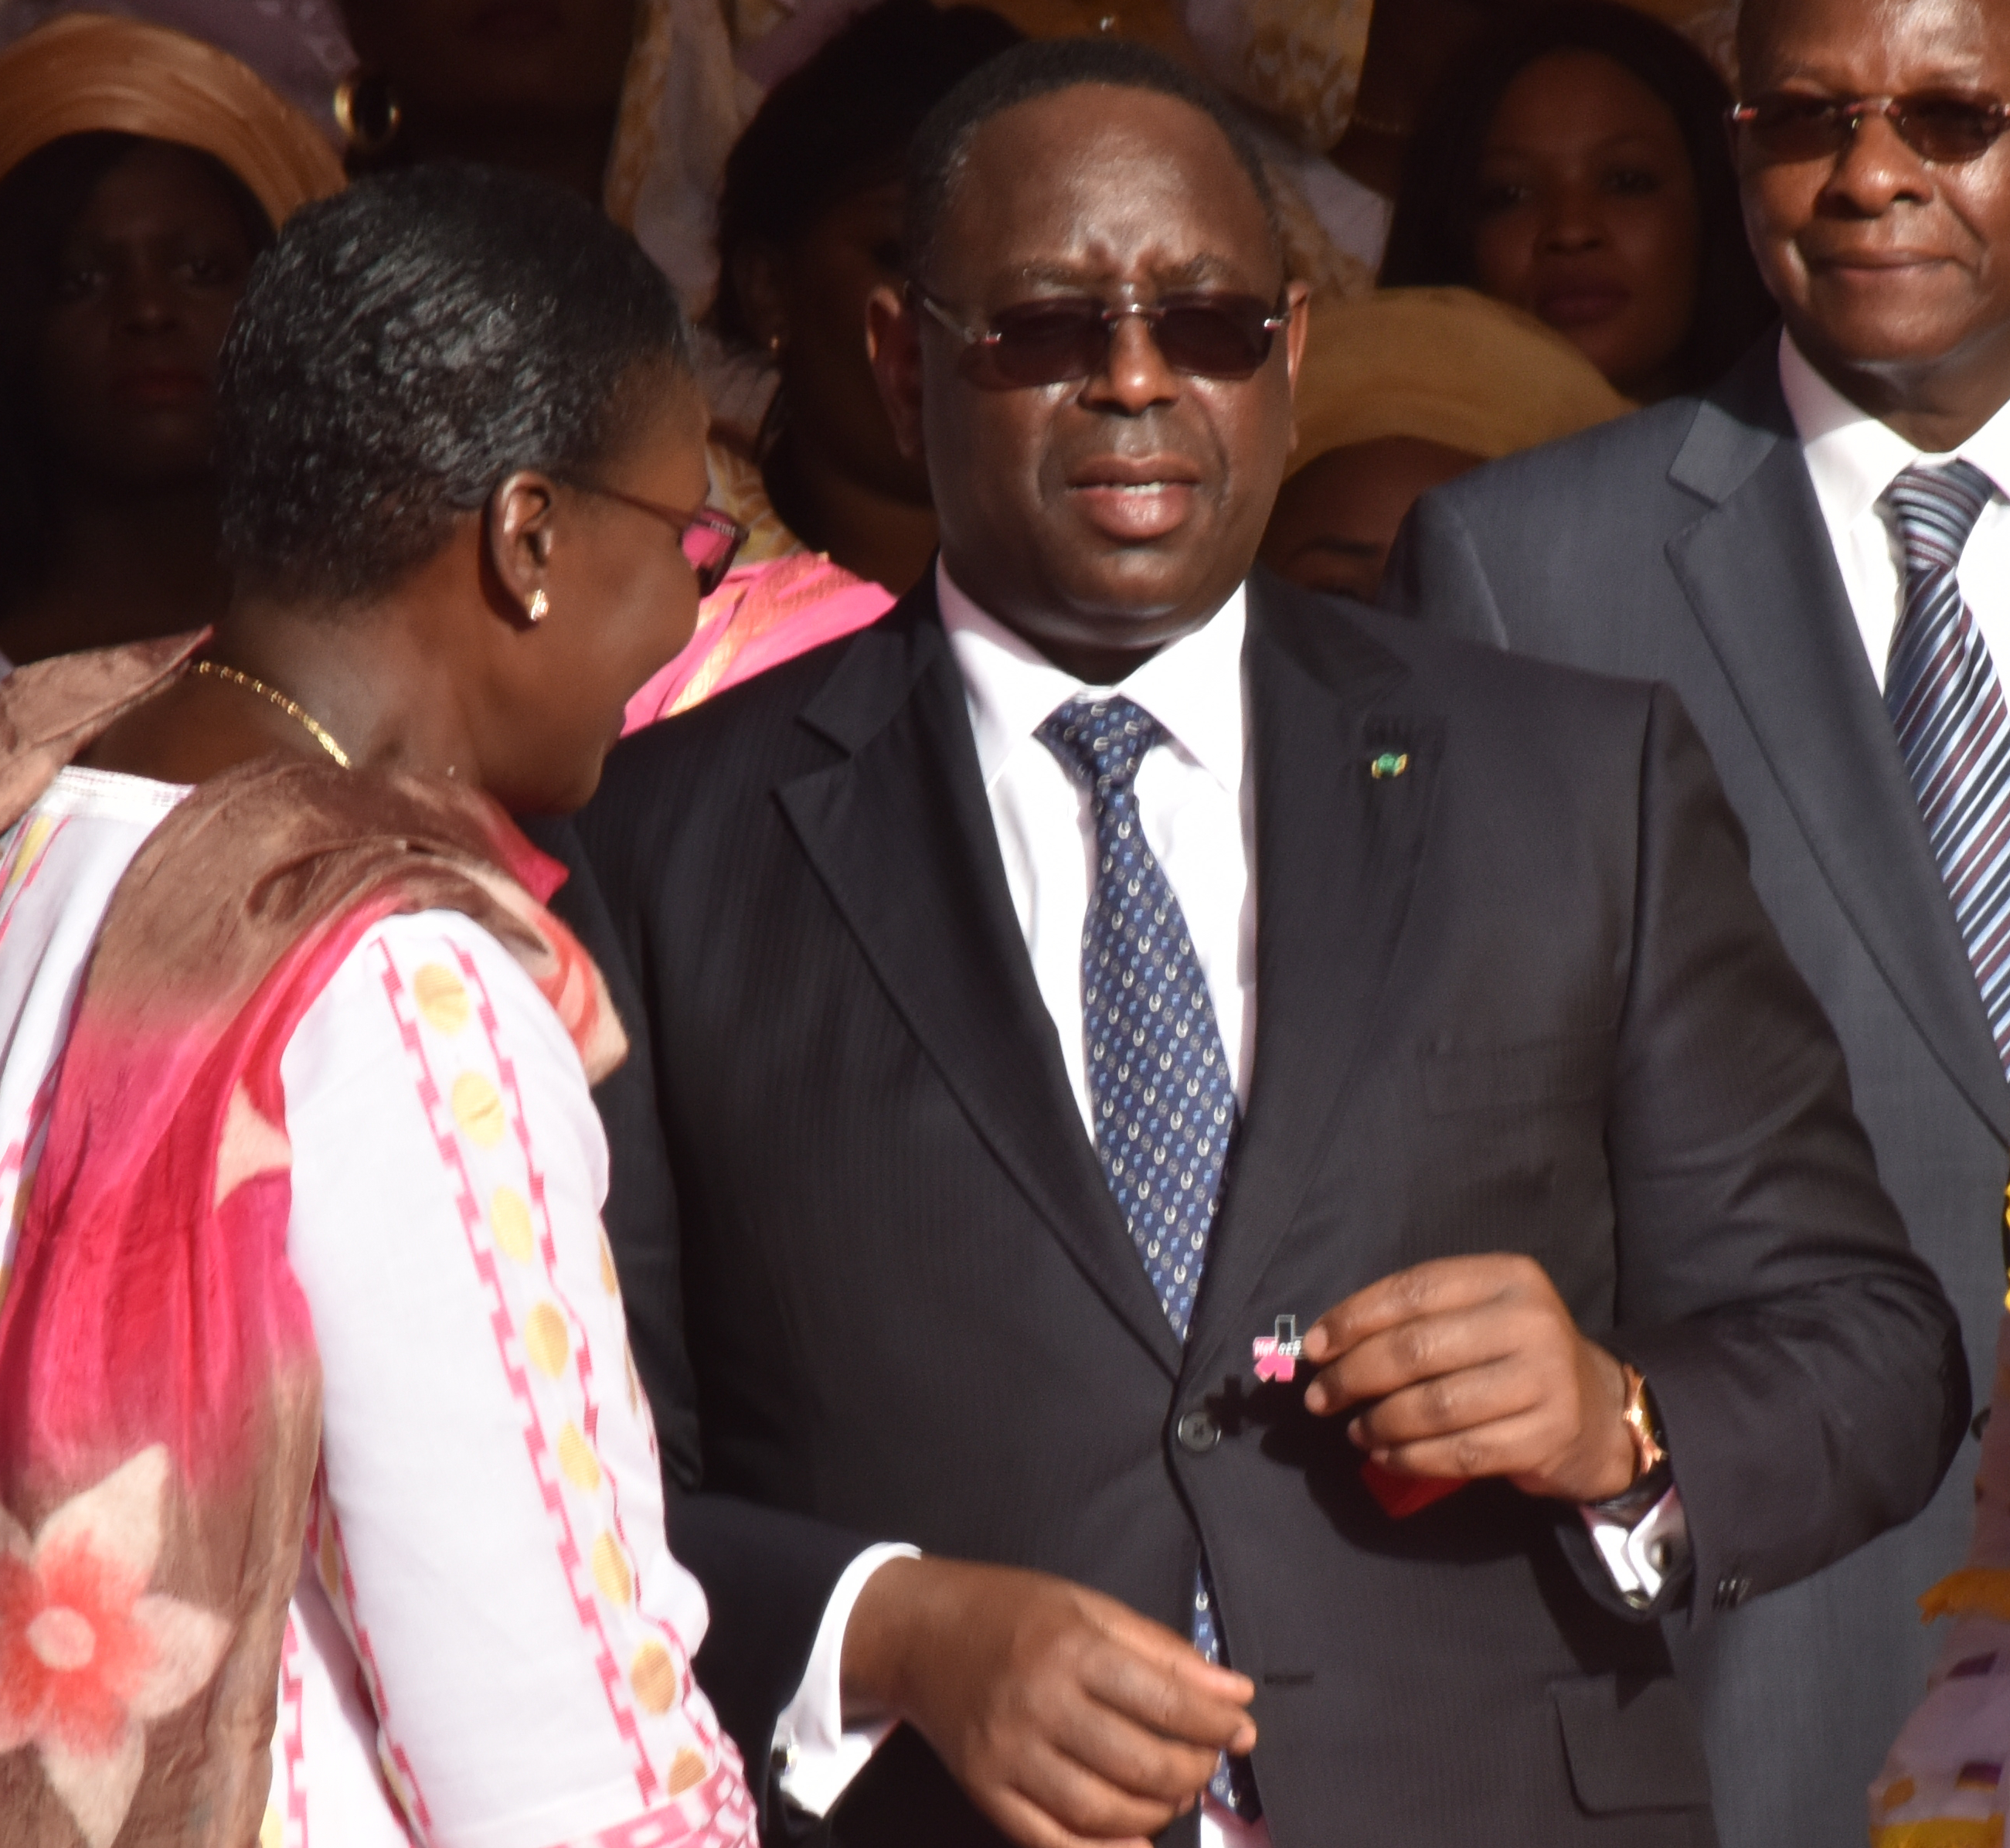 The President Macky Sall launches HeForShe campain in Senegal